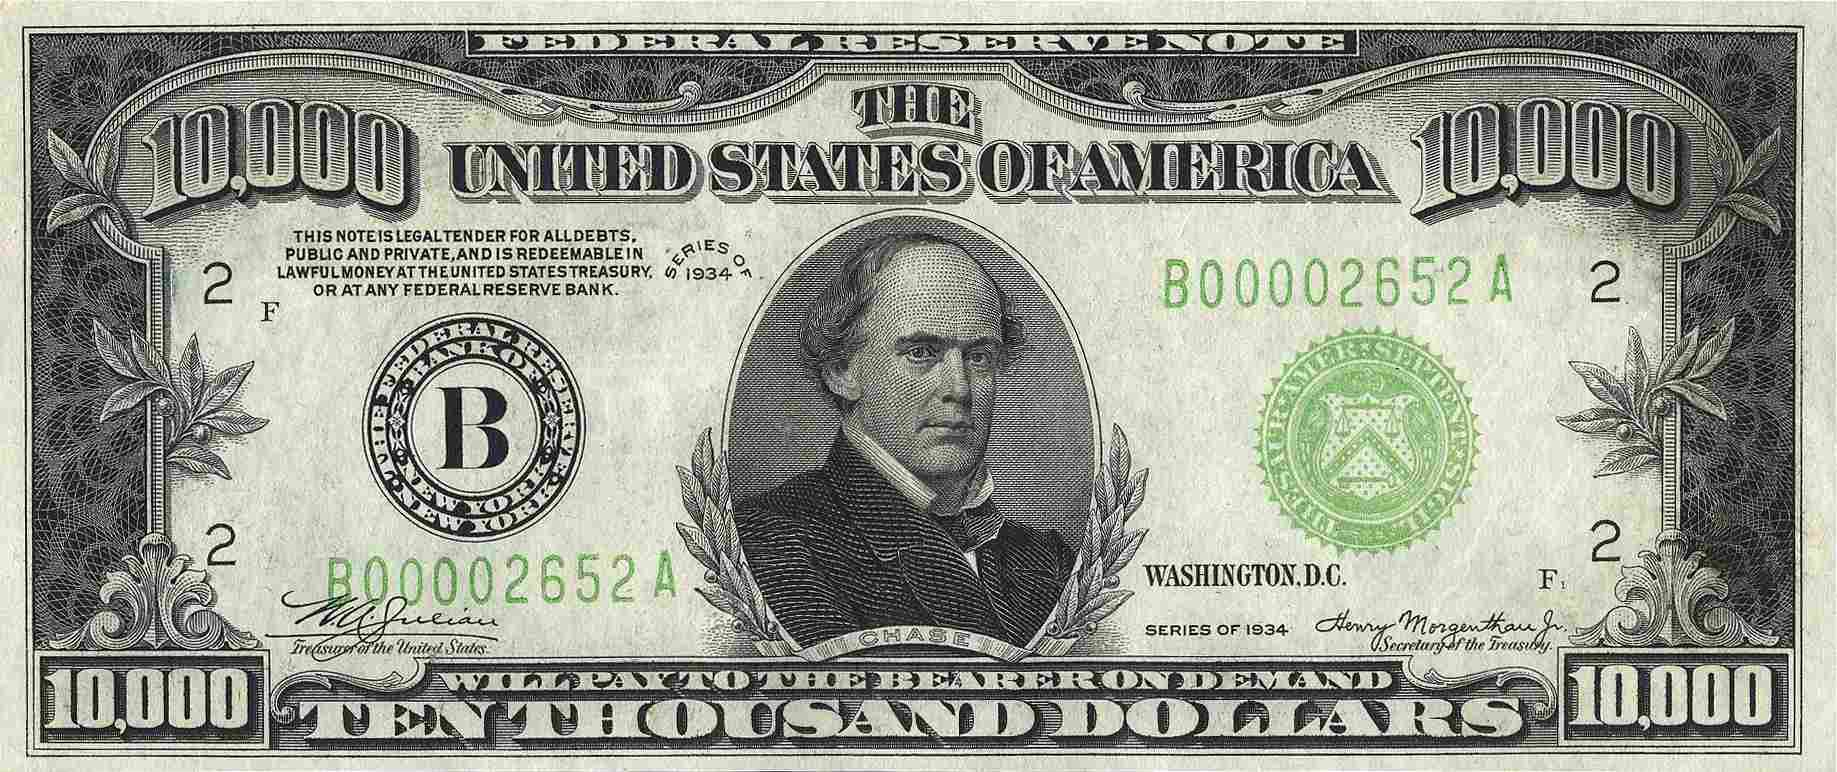 Faces On Every Us Bill List And Photos